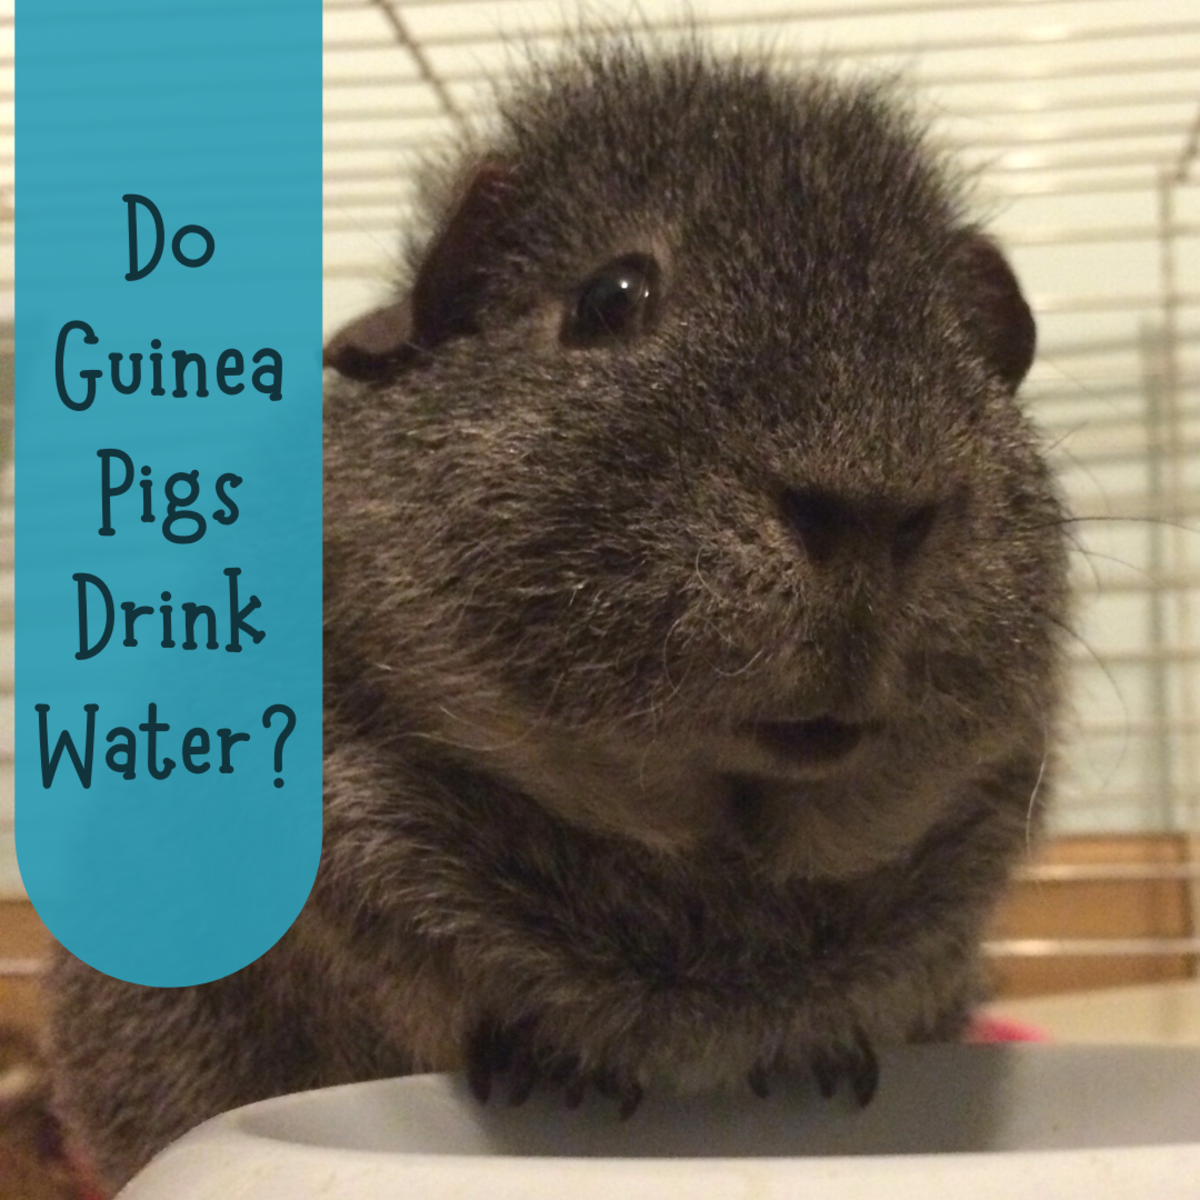 Why Isn't My Guinea Pig Drinking Water?